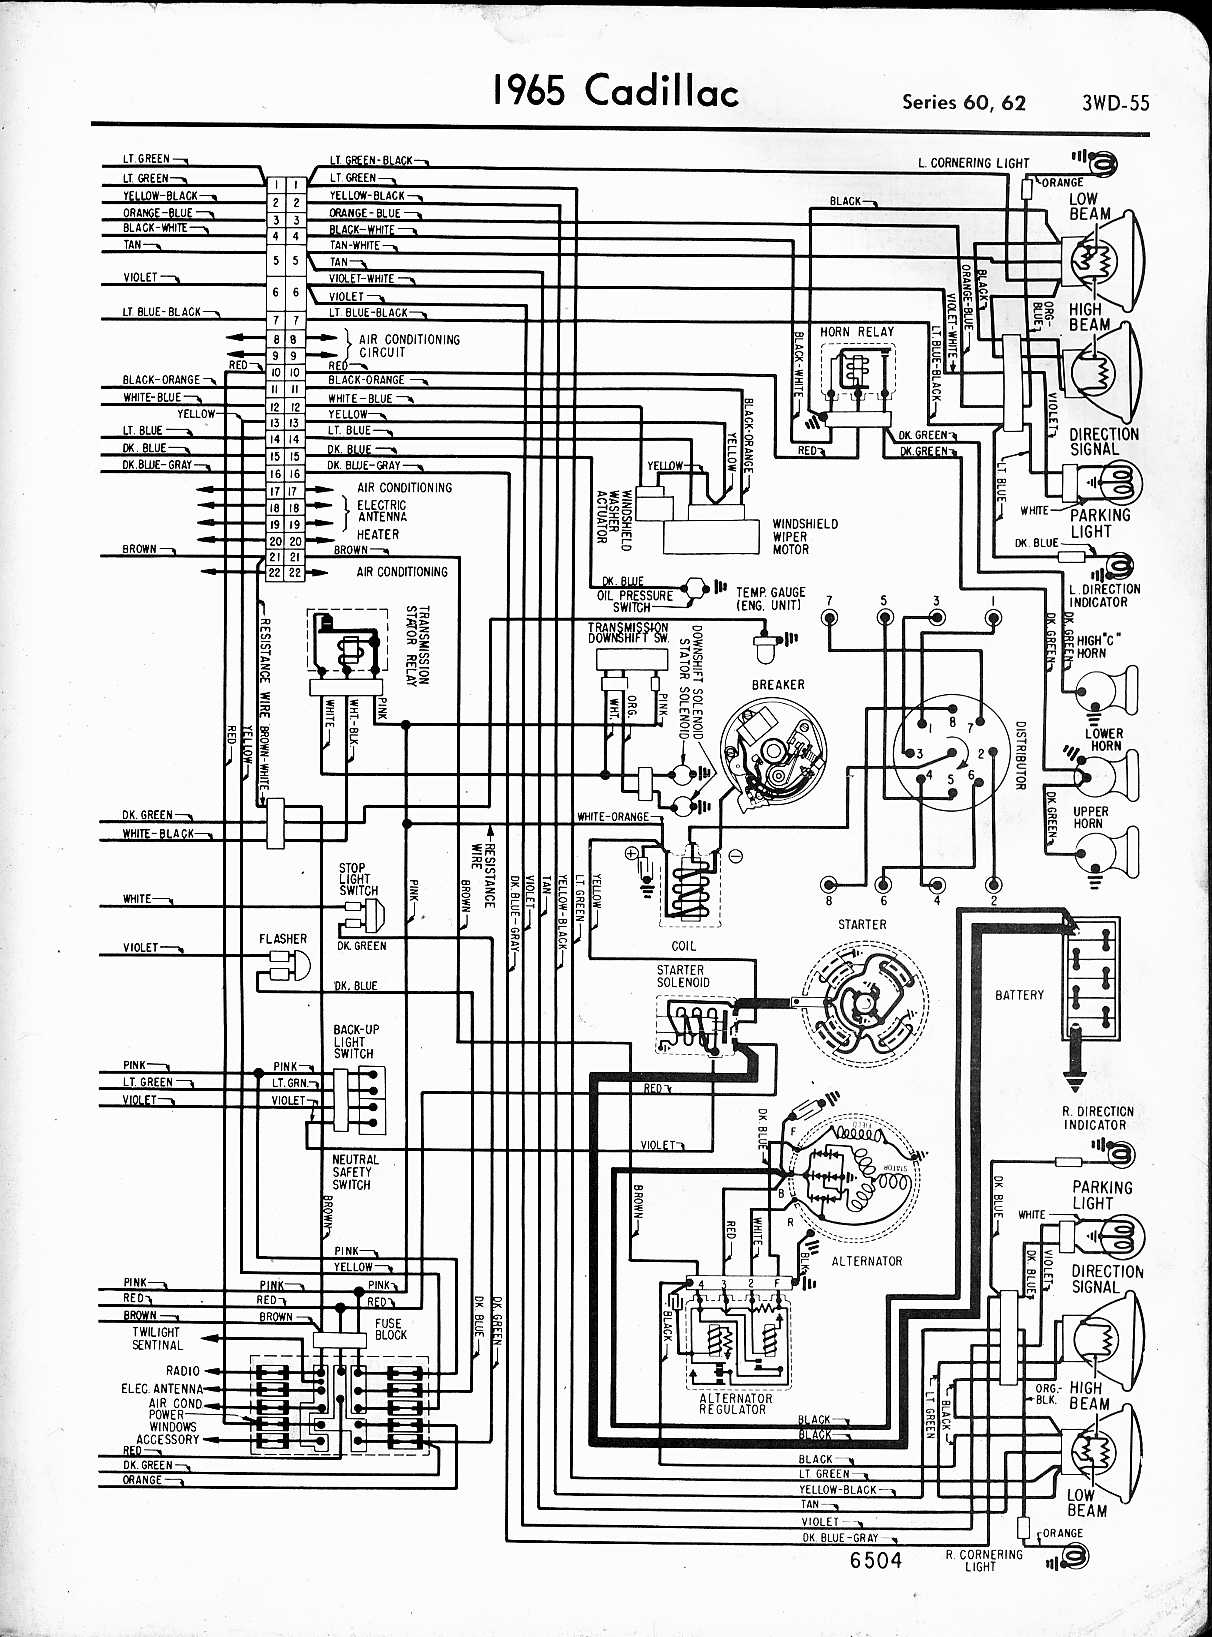 1968 Dodge Coronet Wiring Diagram Instrument Cluster Download 1970 Challenger Alternator I Have A 1965 Cadillac Convertible With Power Windows The Amc Javelin Pontiac Lemans